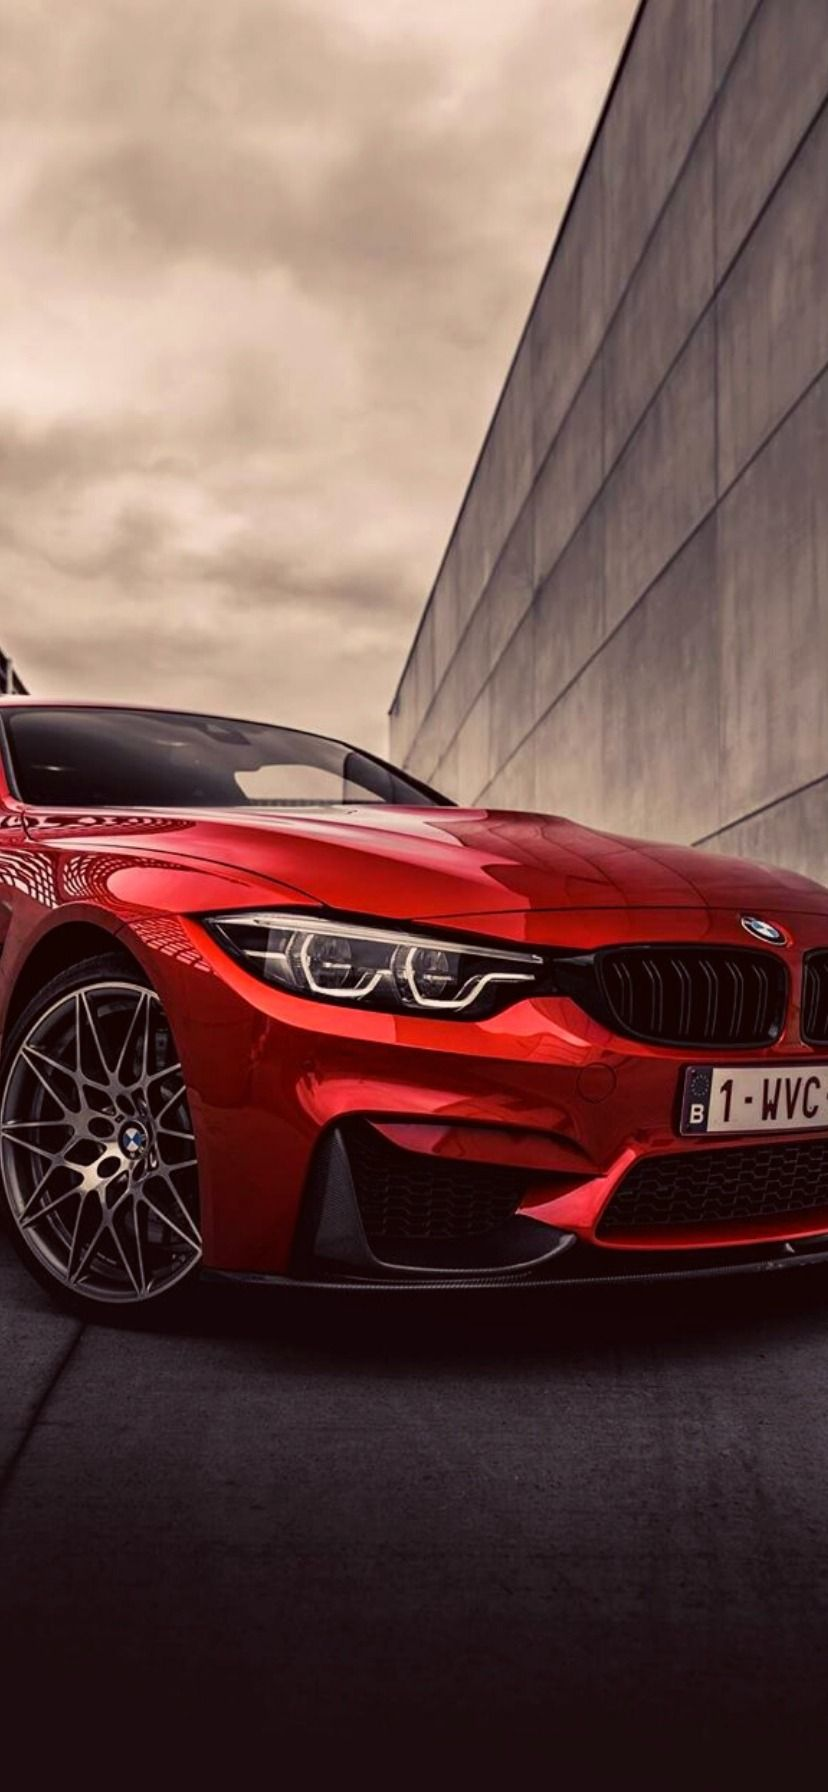 Iphone Xr Bmw Wallpapers Top 25 Bmw Wallpaper Iphone Xr In 2020